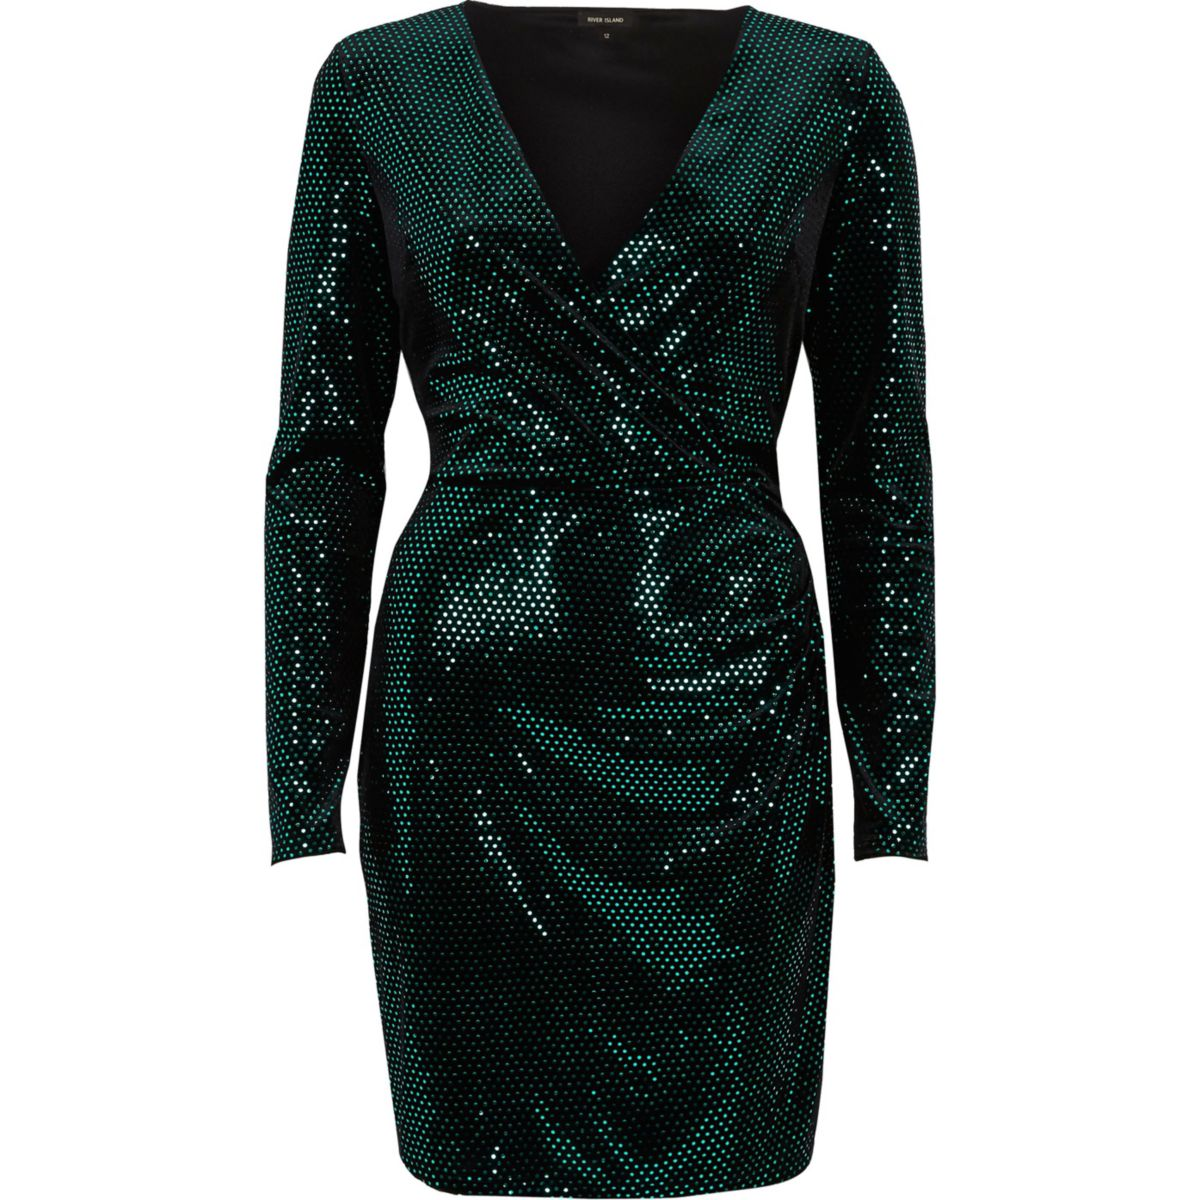 Green sequin metallic wrap bodycon dress